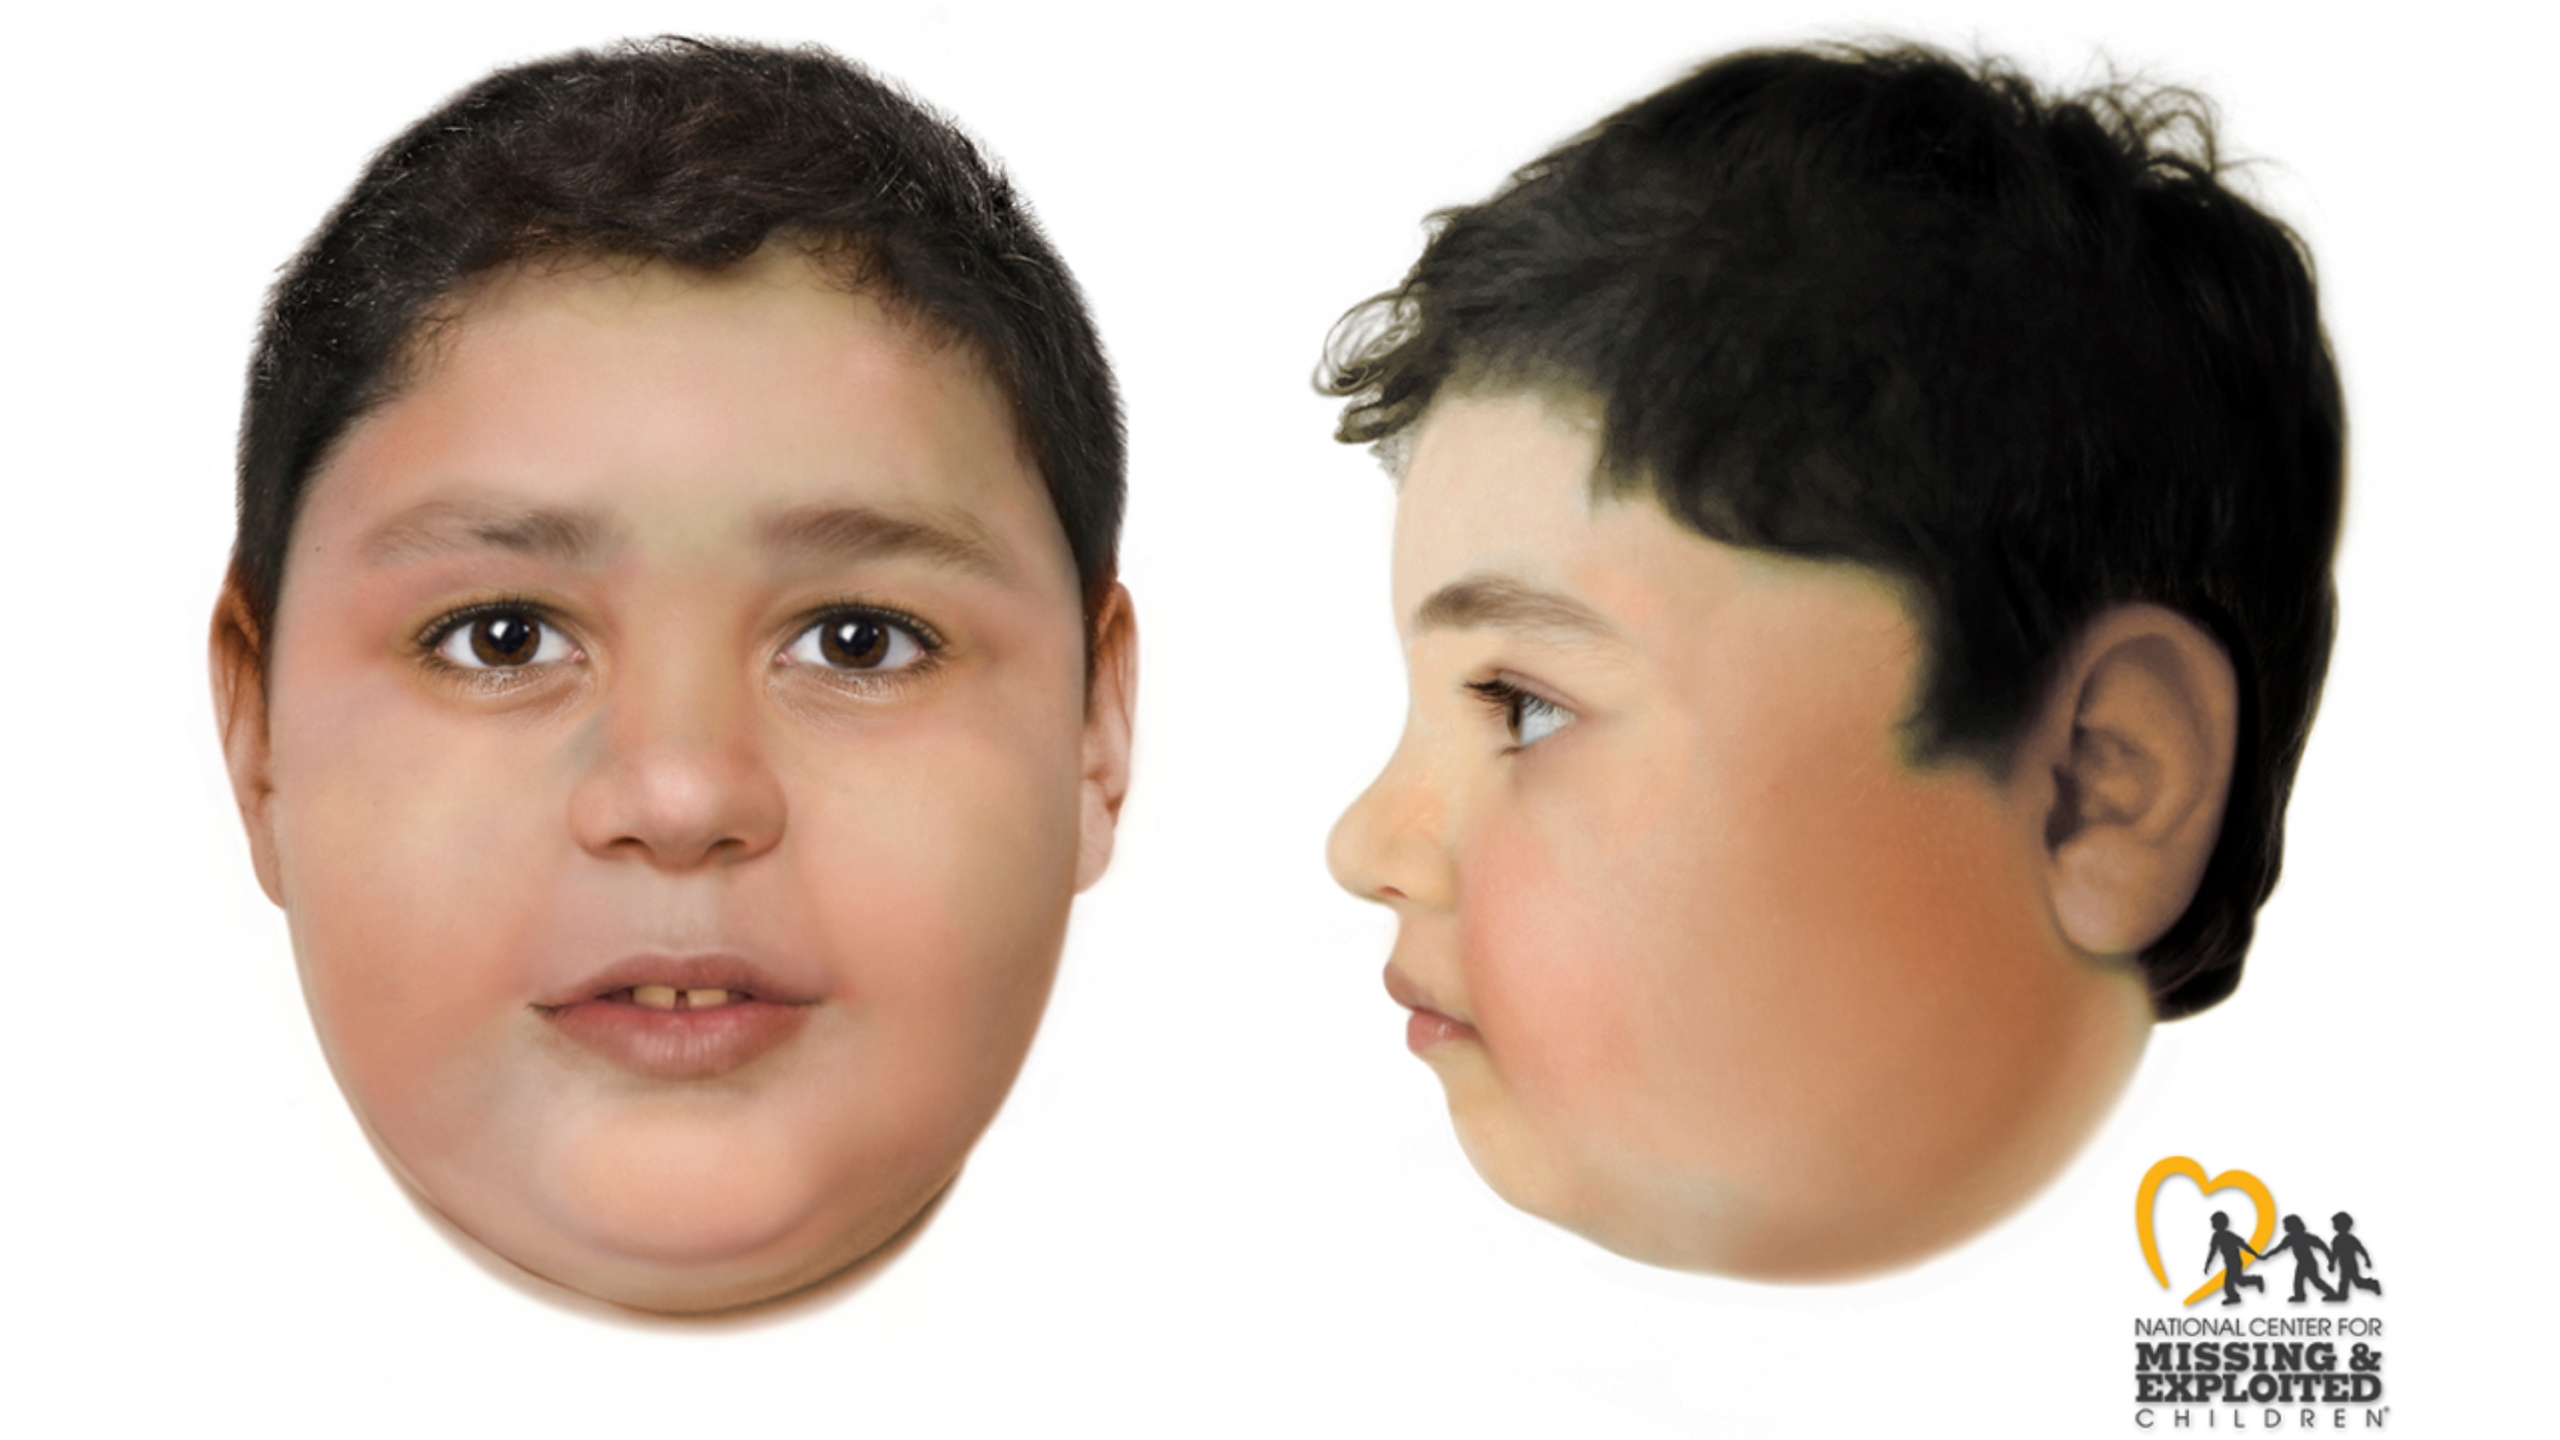 These artist's renderings created by the National Center for Missing and Exploited Children and distributed on June 3, 2021, by the FBI and Las Vegas Metropolitan Police Department depict a slain boy believed to be between the ages of 8 and 10 whose body was found on May 28, 2021, off a hiking trail between Las Vegas and rural Pahrump, Nev. Authorities offered a $10,000 reward to identify the child. (Las Vegas Metropolitan Police Department via AP)